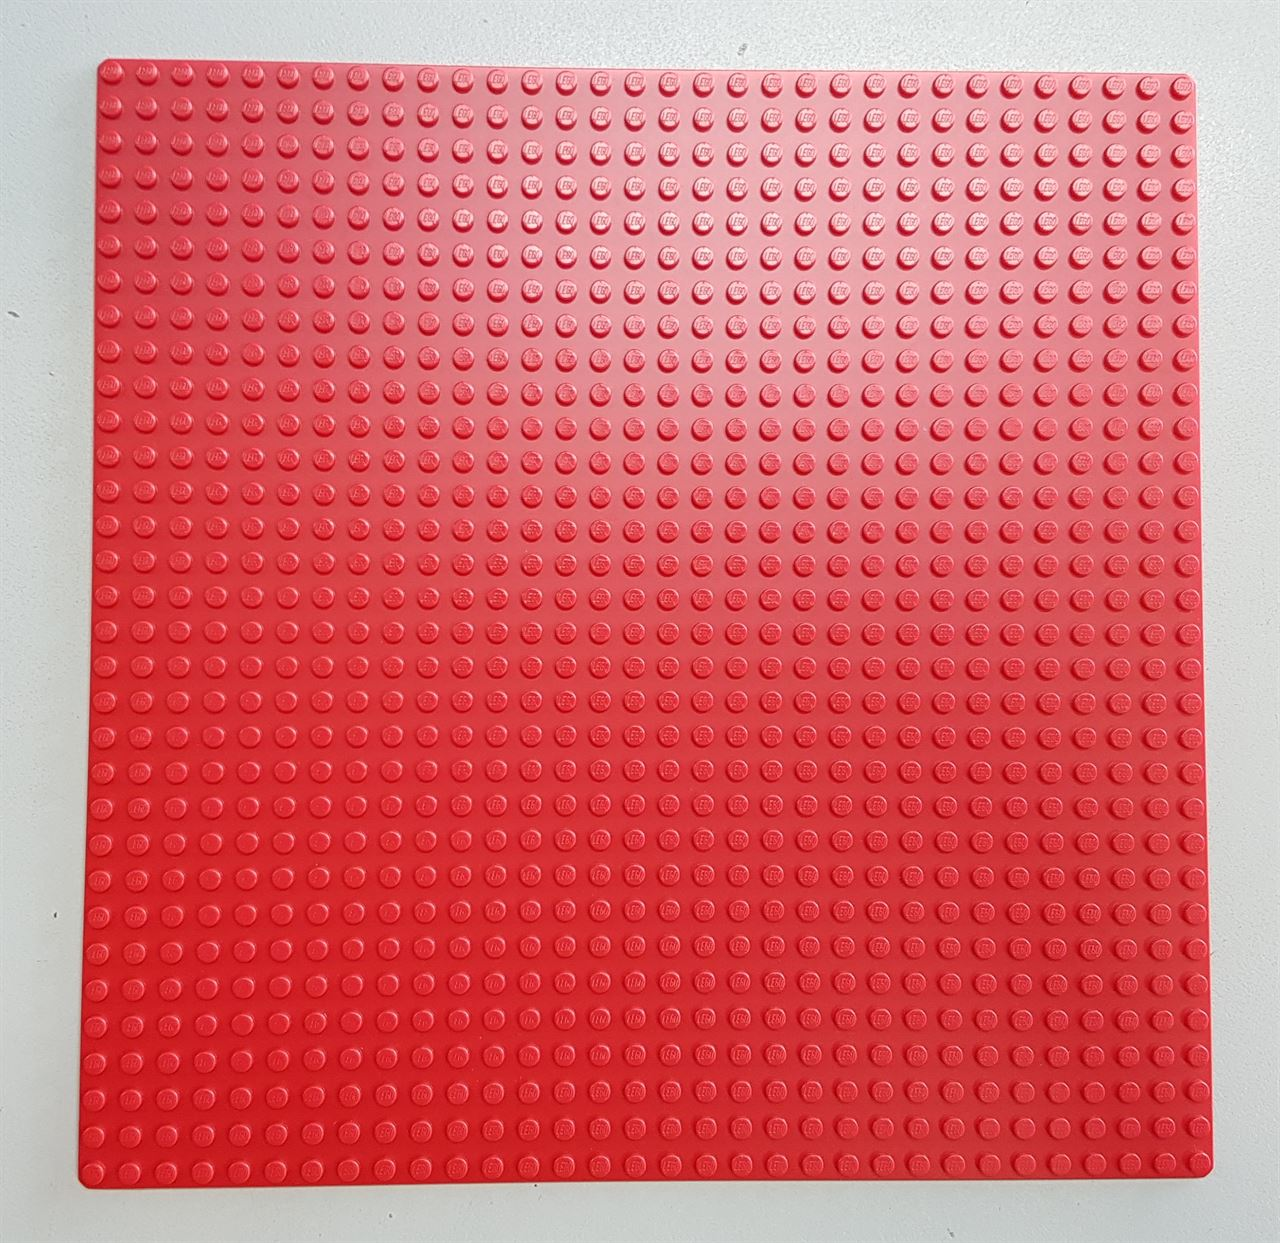 0004322_5057-32x32-red-baseplate